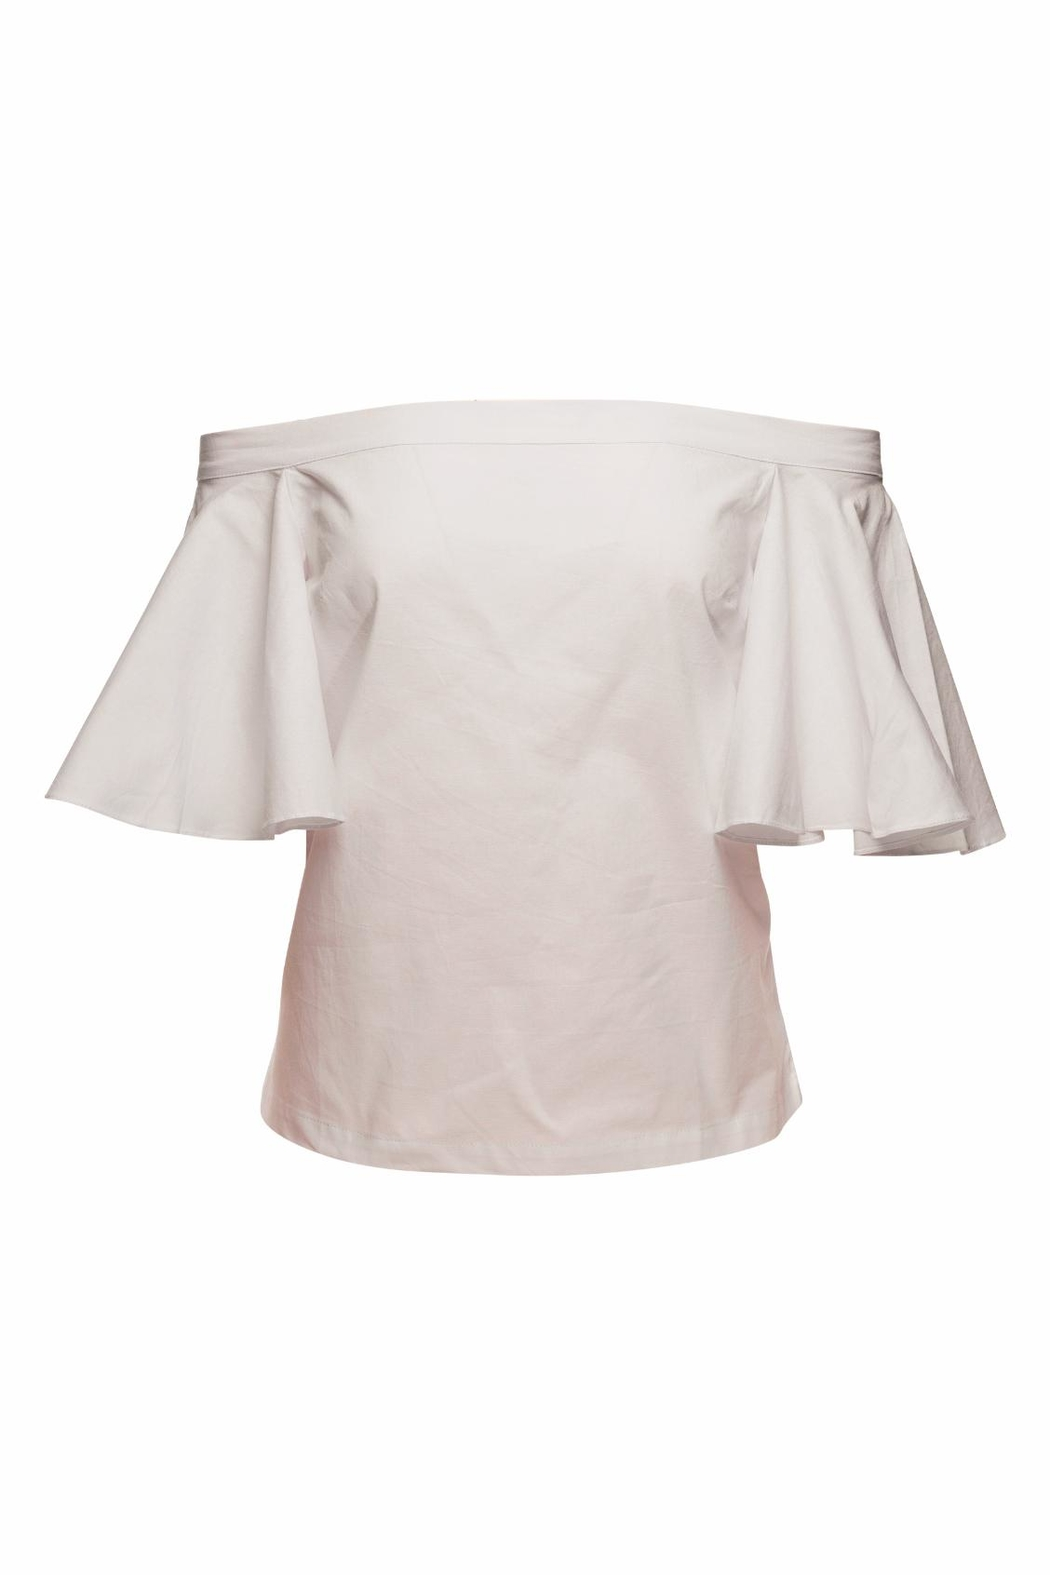 MLM The Label Highlight Shoulder Top - Side Cropped Image